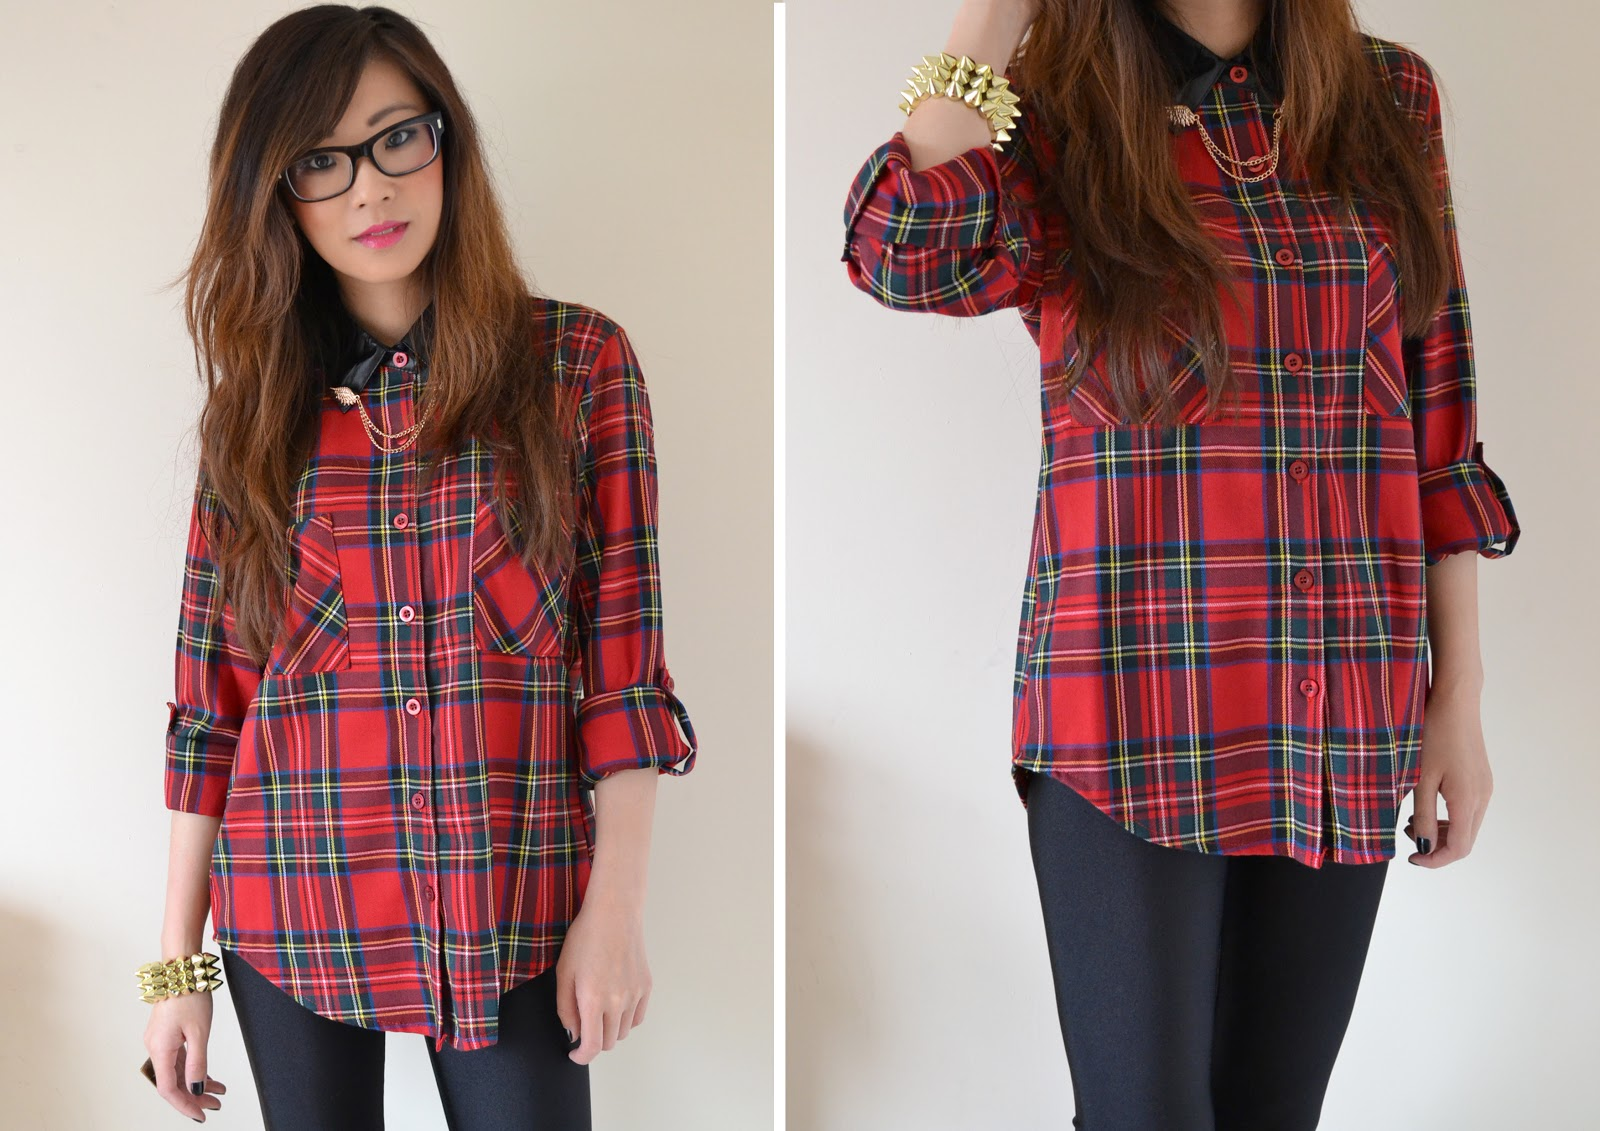 red tartan shirt with collar tips, collar tips, red tartan shirt, uk fashion blogger